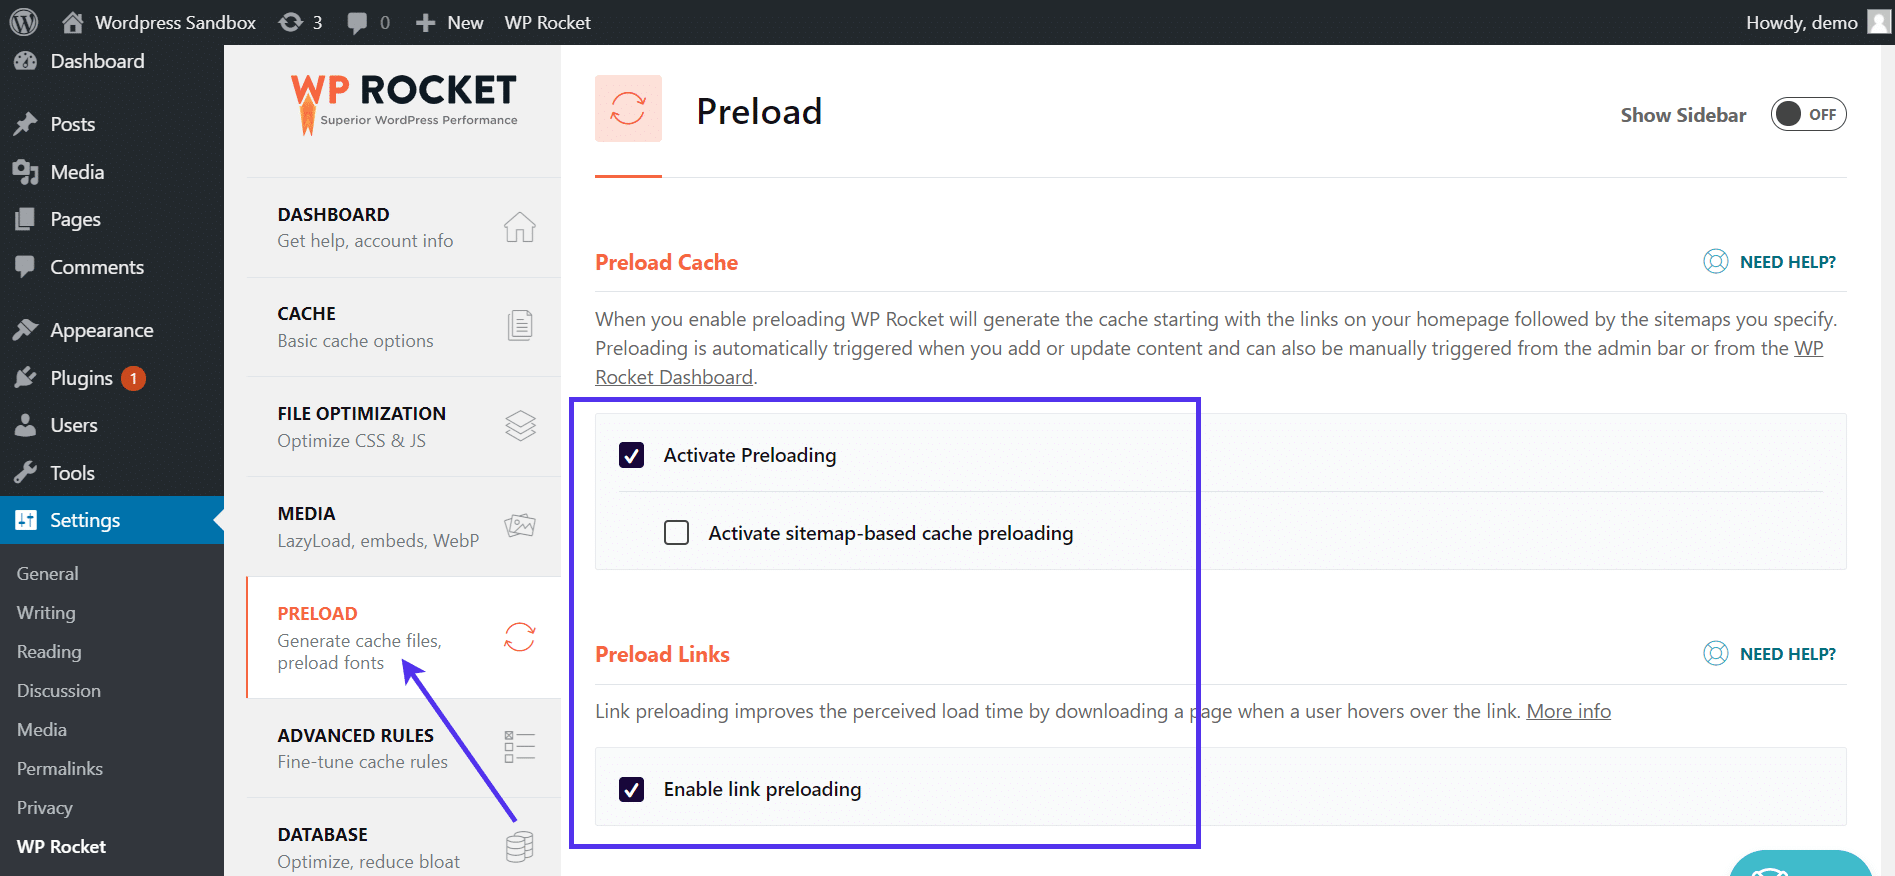 Preload settings in WP Rocket